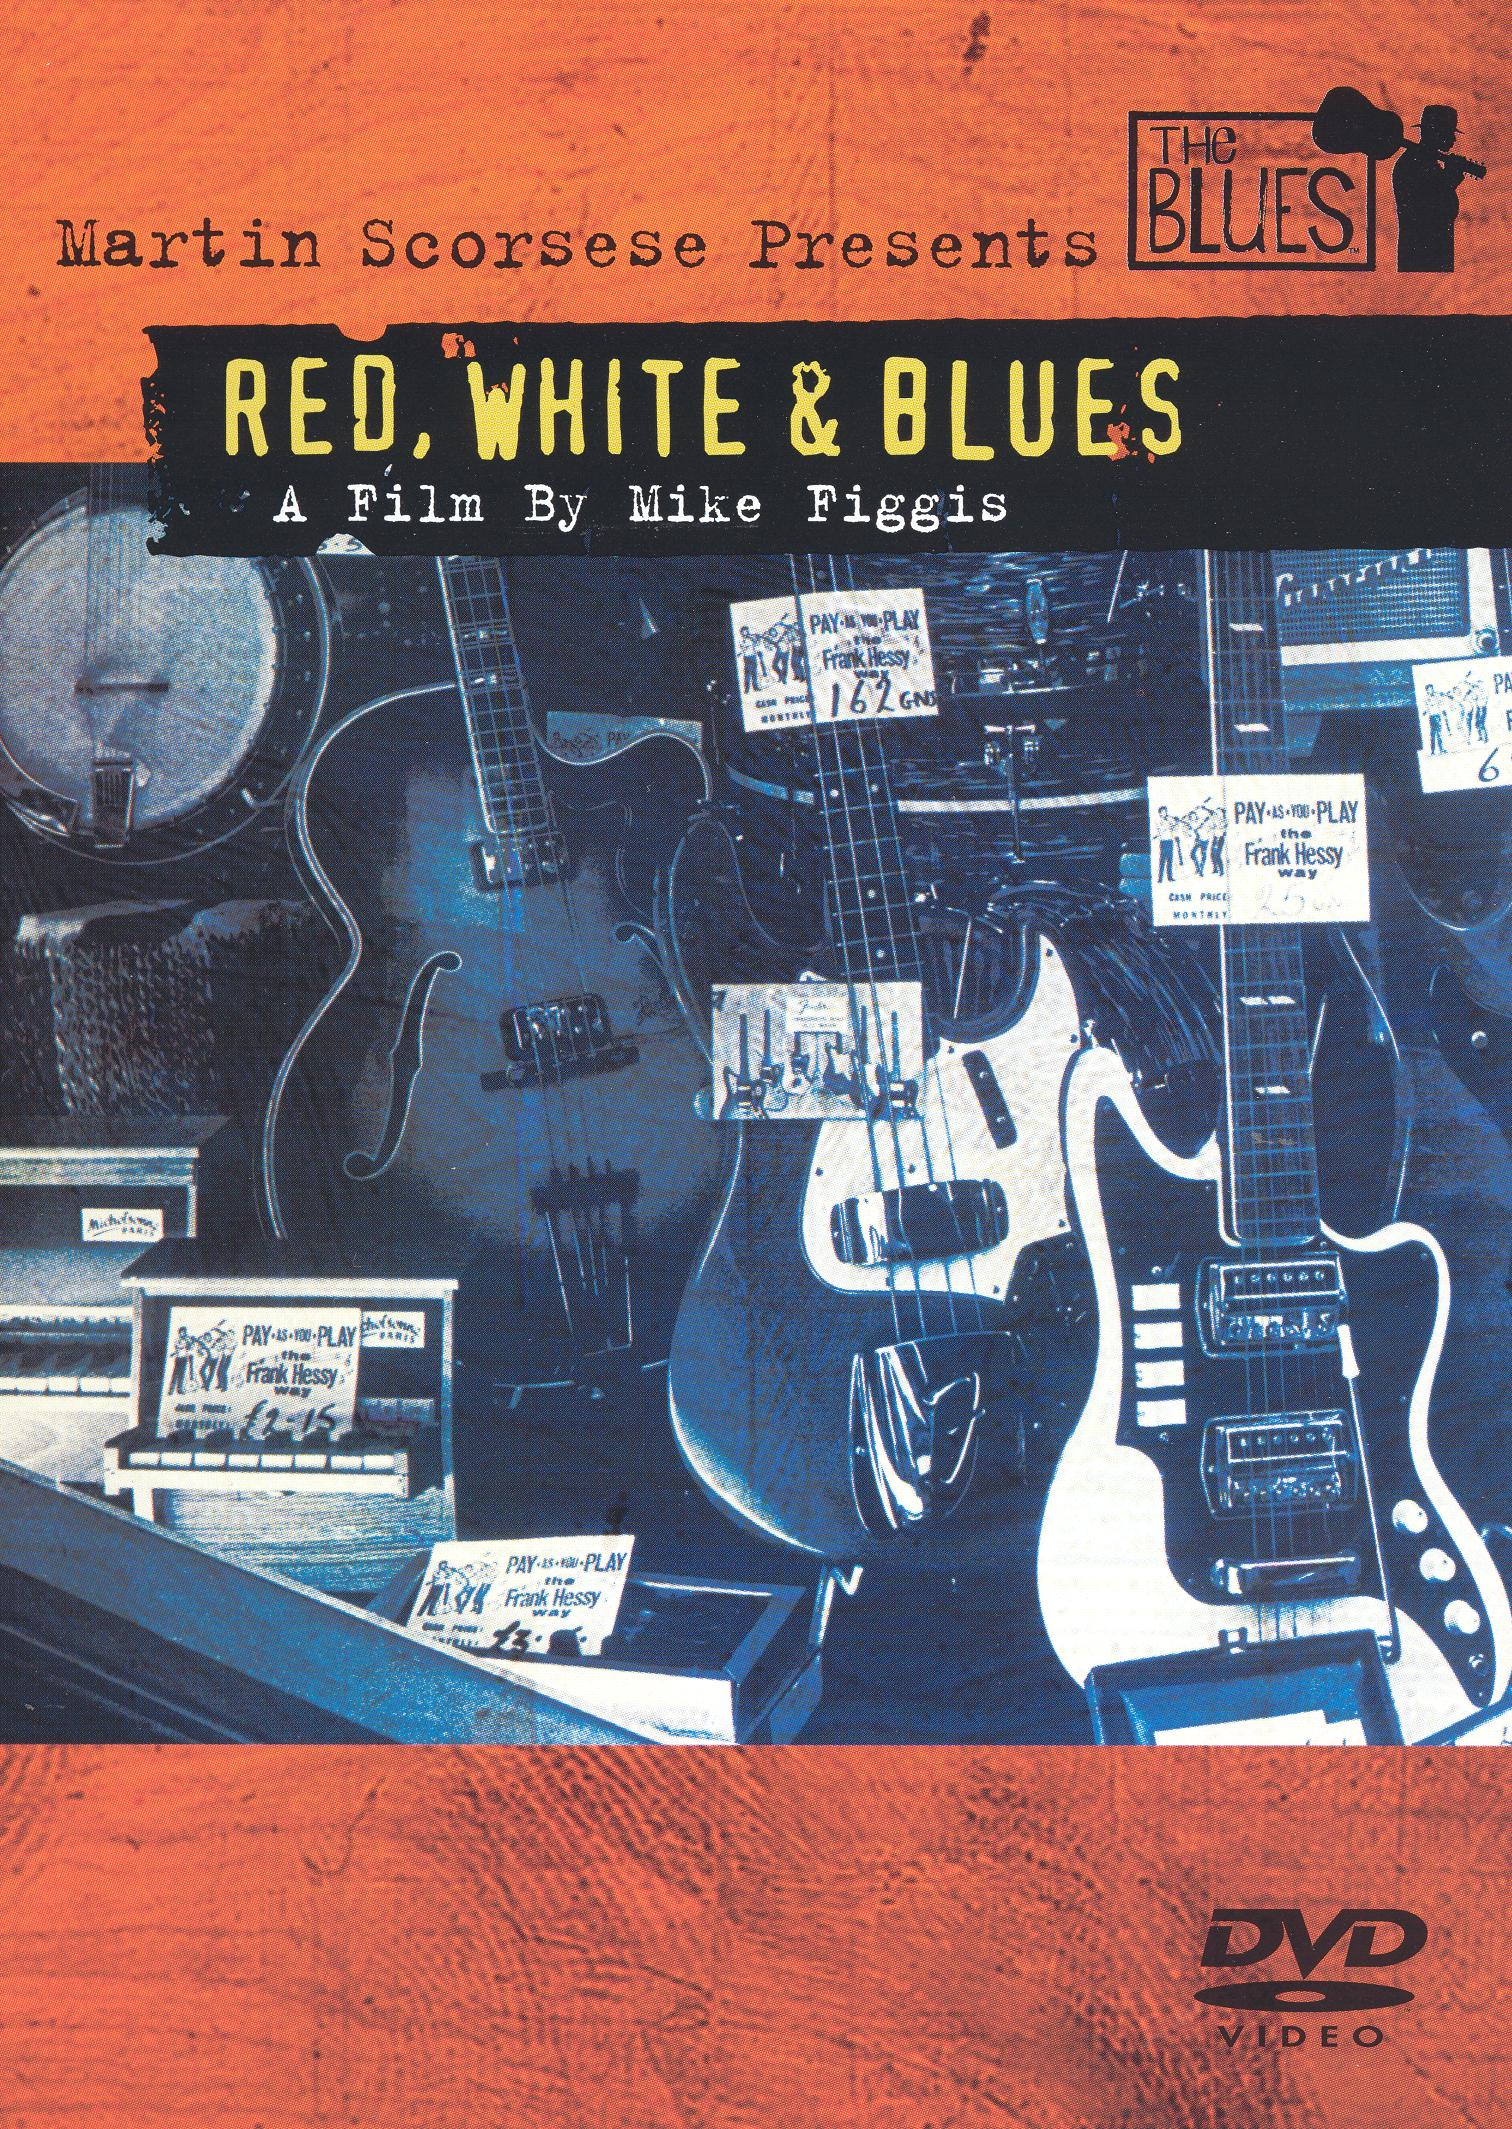 The Blues: Red, White & Blues